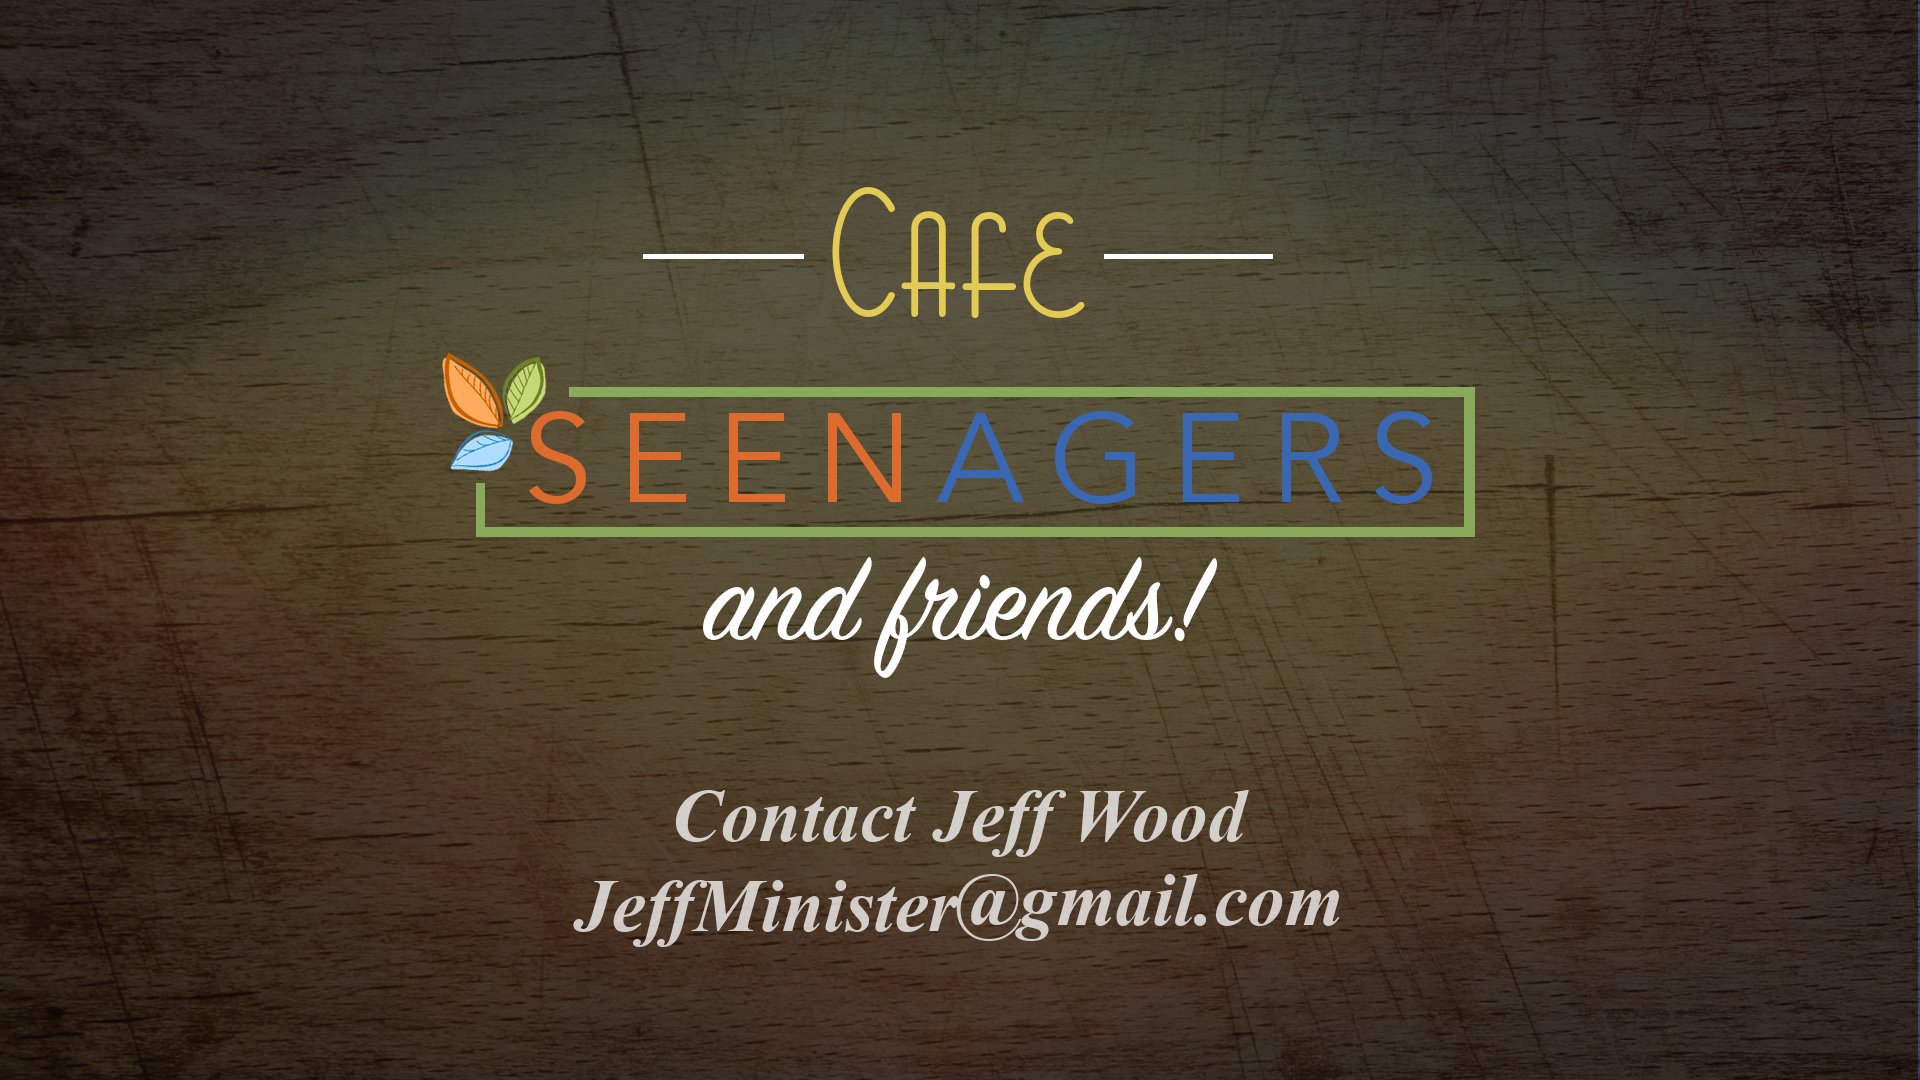 Cafe Seenagers & Friends